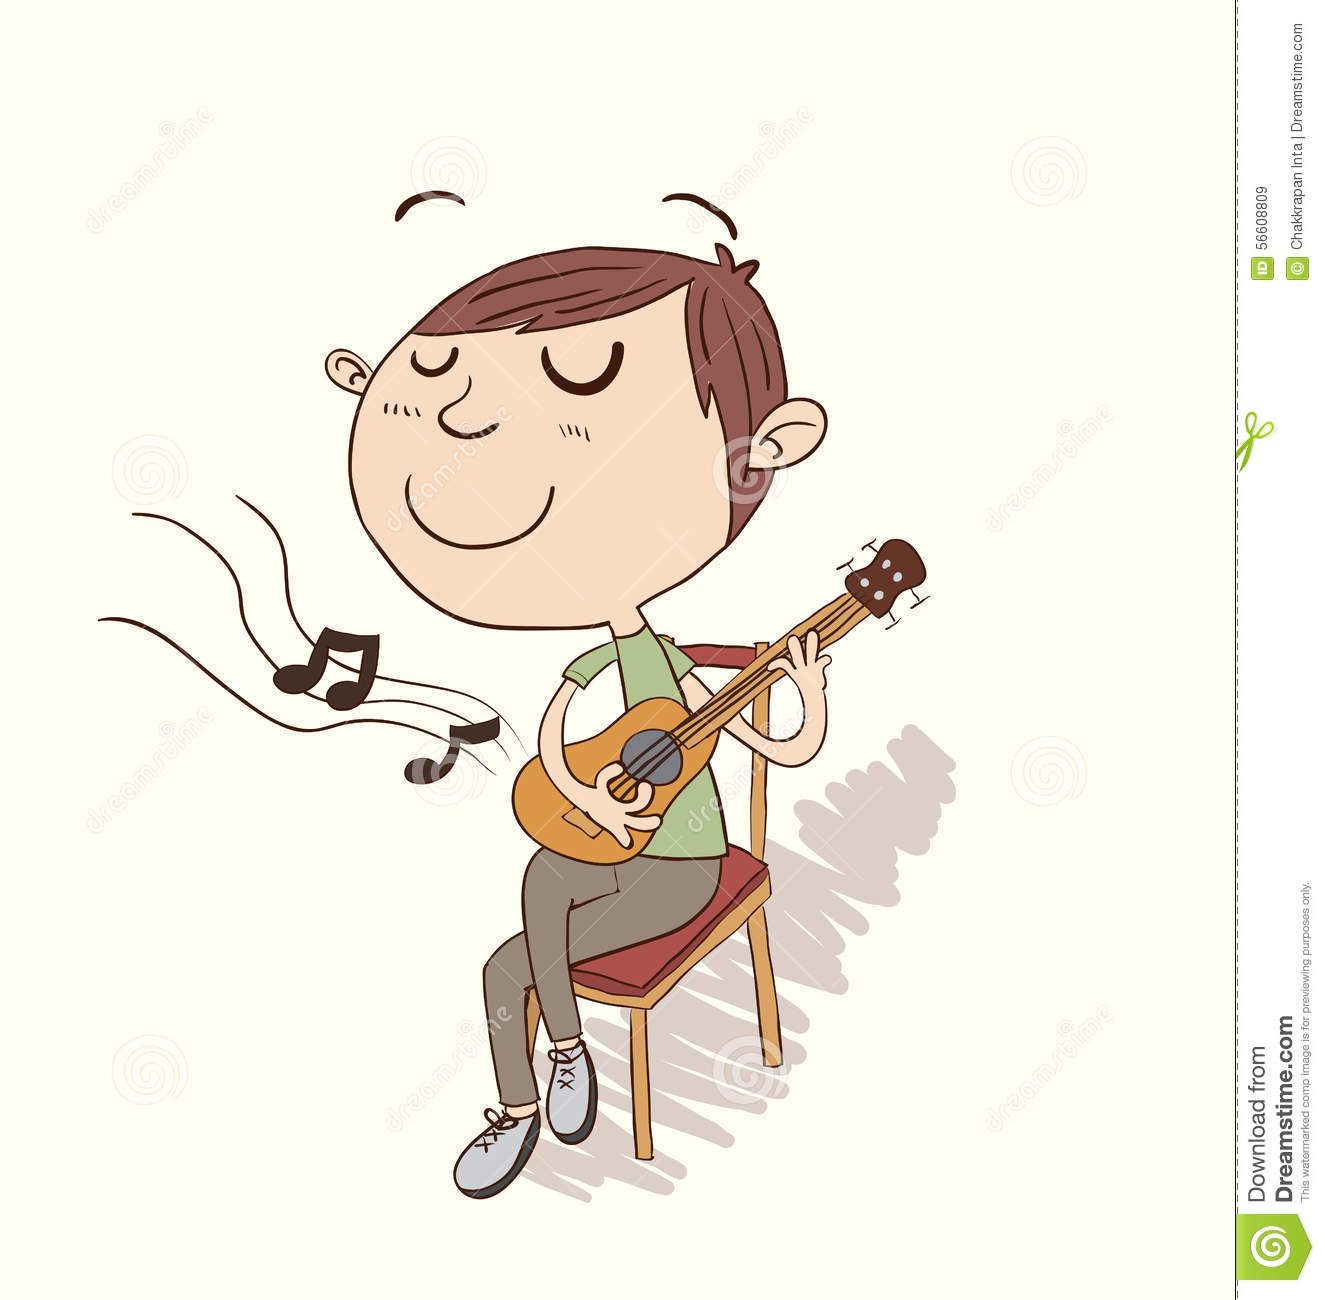 Cartoon Boy Playing Guitar. Stock Photo - Image: 56608809